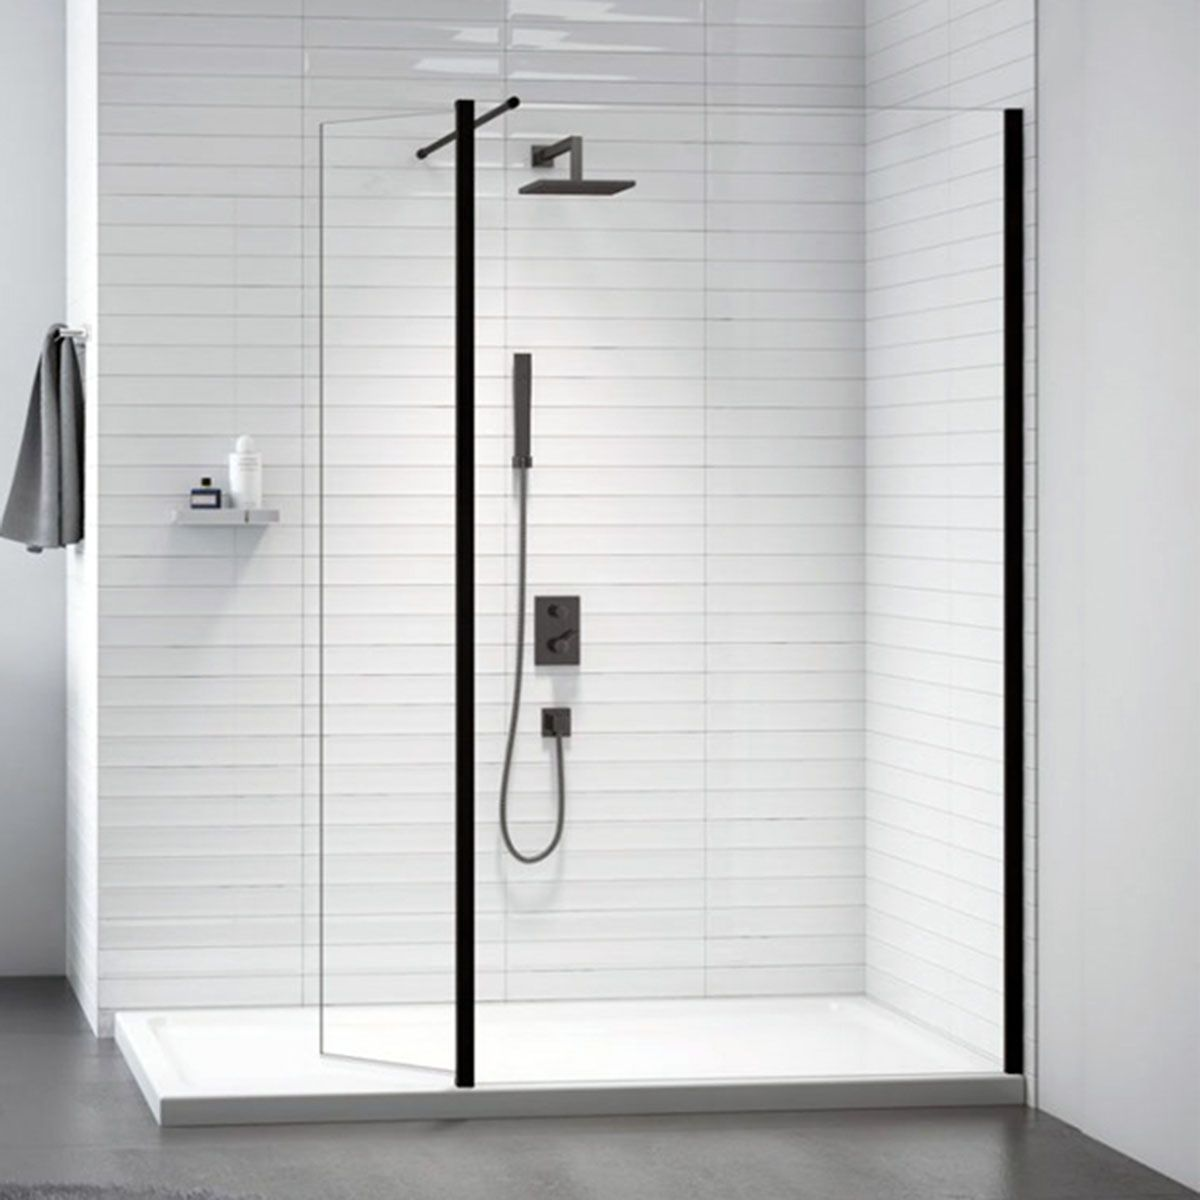 Merlyn Black Frame Shower Screen with Swivel Panel